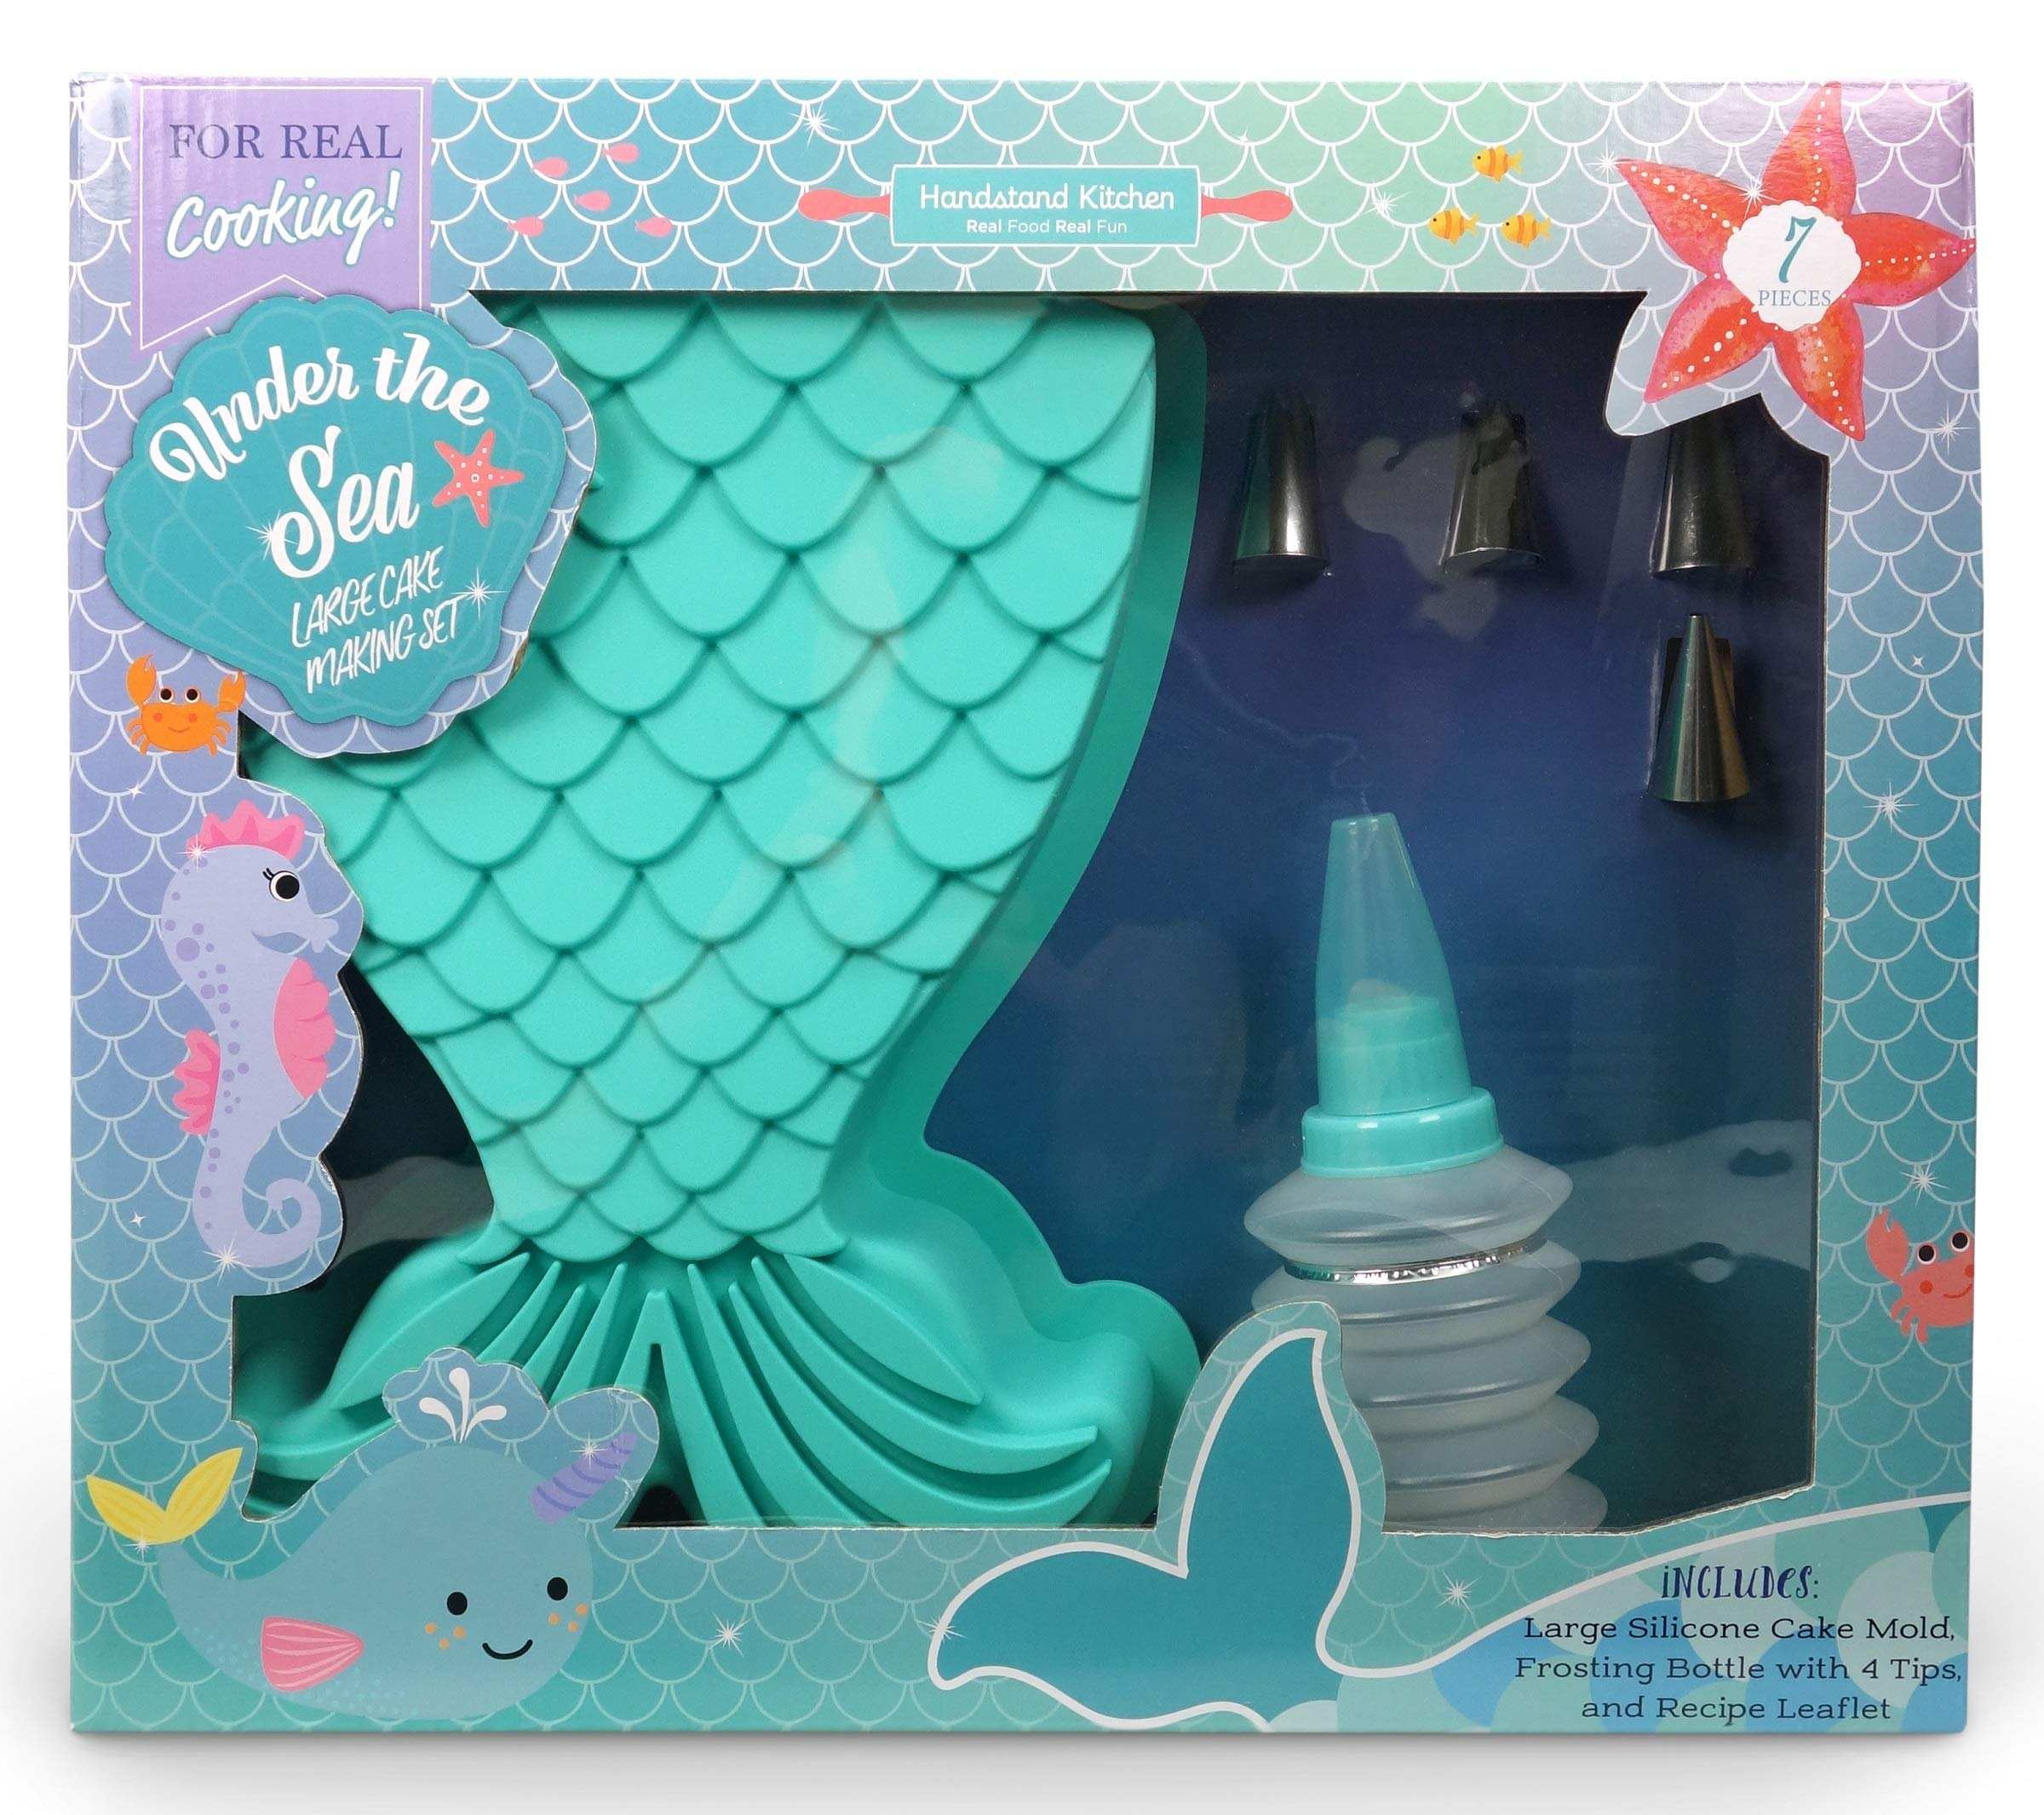 Handstand Kitchen Under the Sea 7-piece Mermaid Tail Shaped Real Cake Baking Set with Recipes for Kids